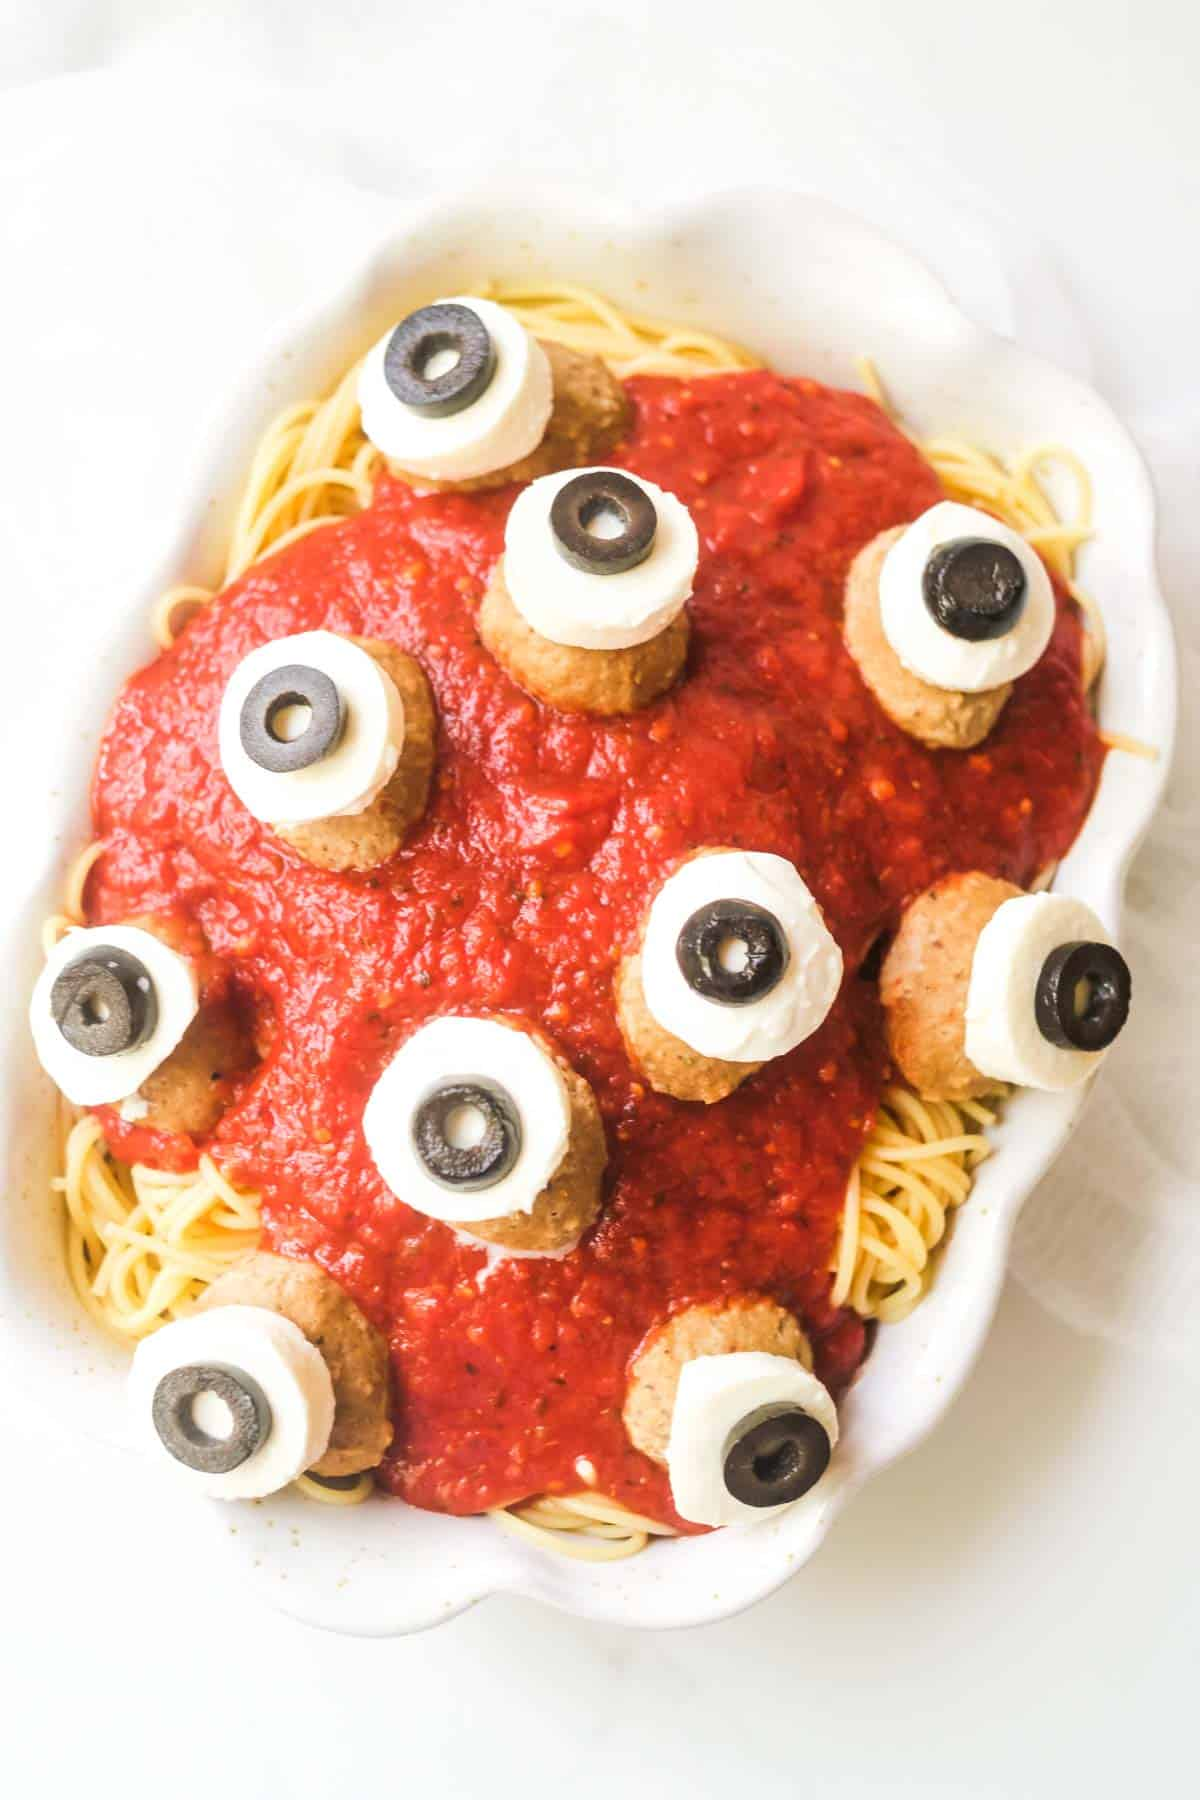 top down view of the completed eyeball Halloween Spaghetti ready to be served